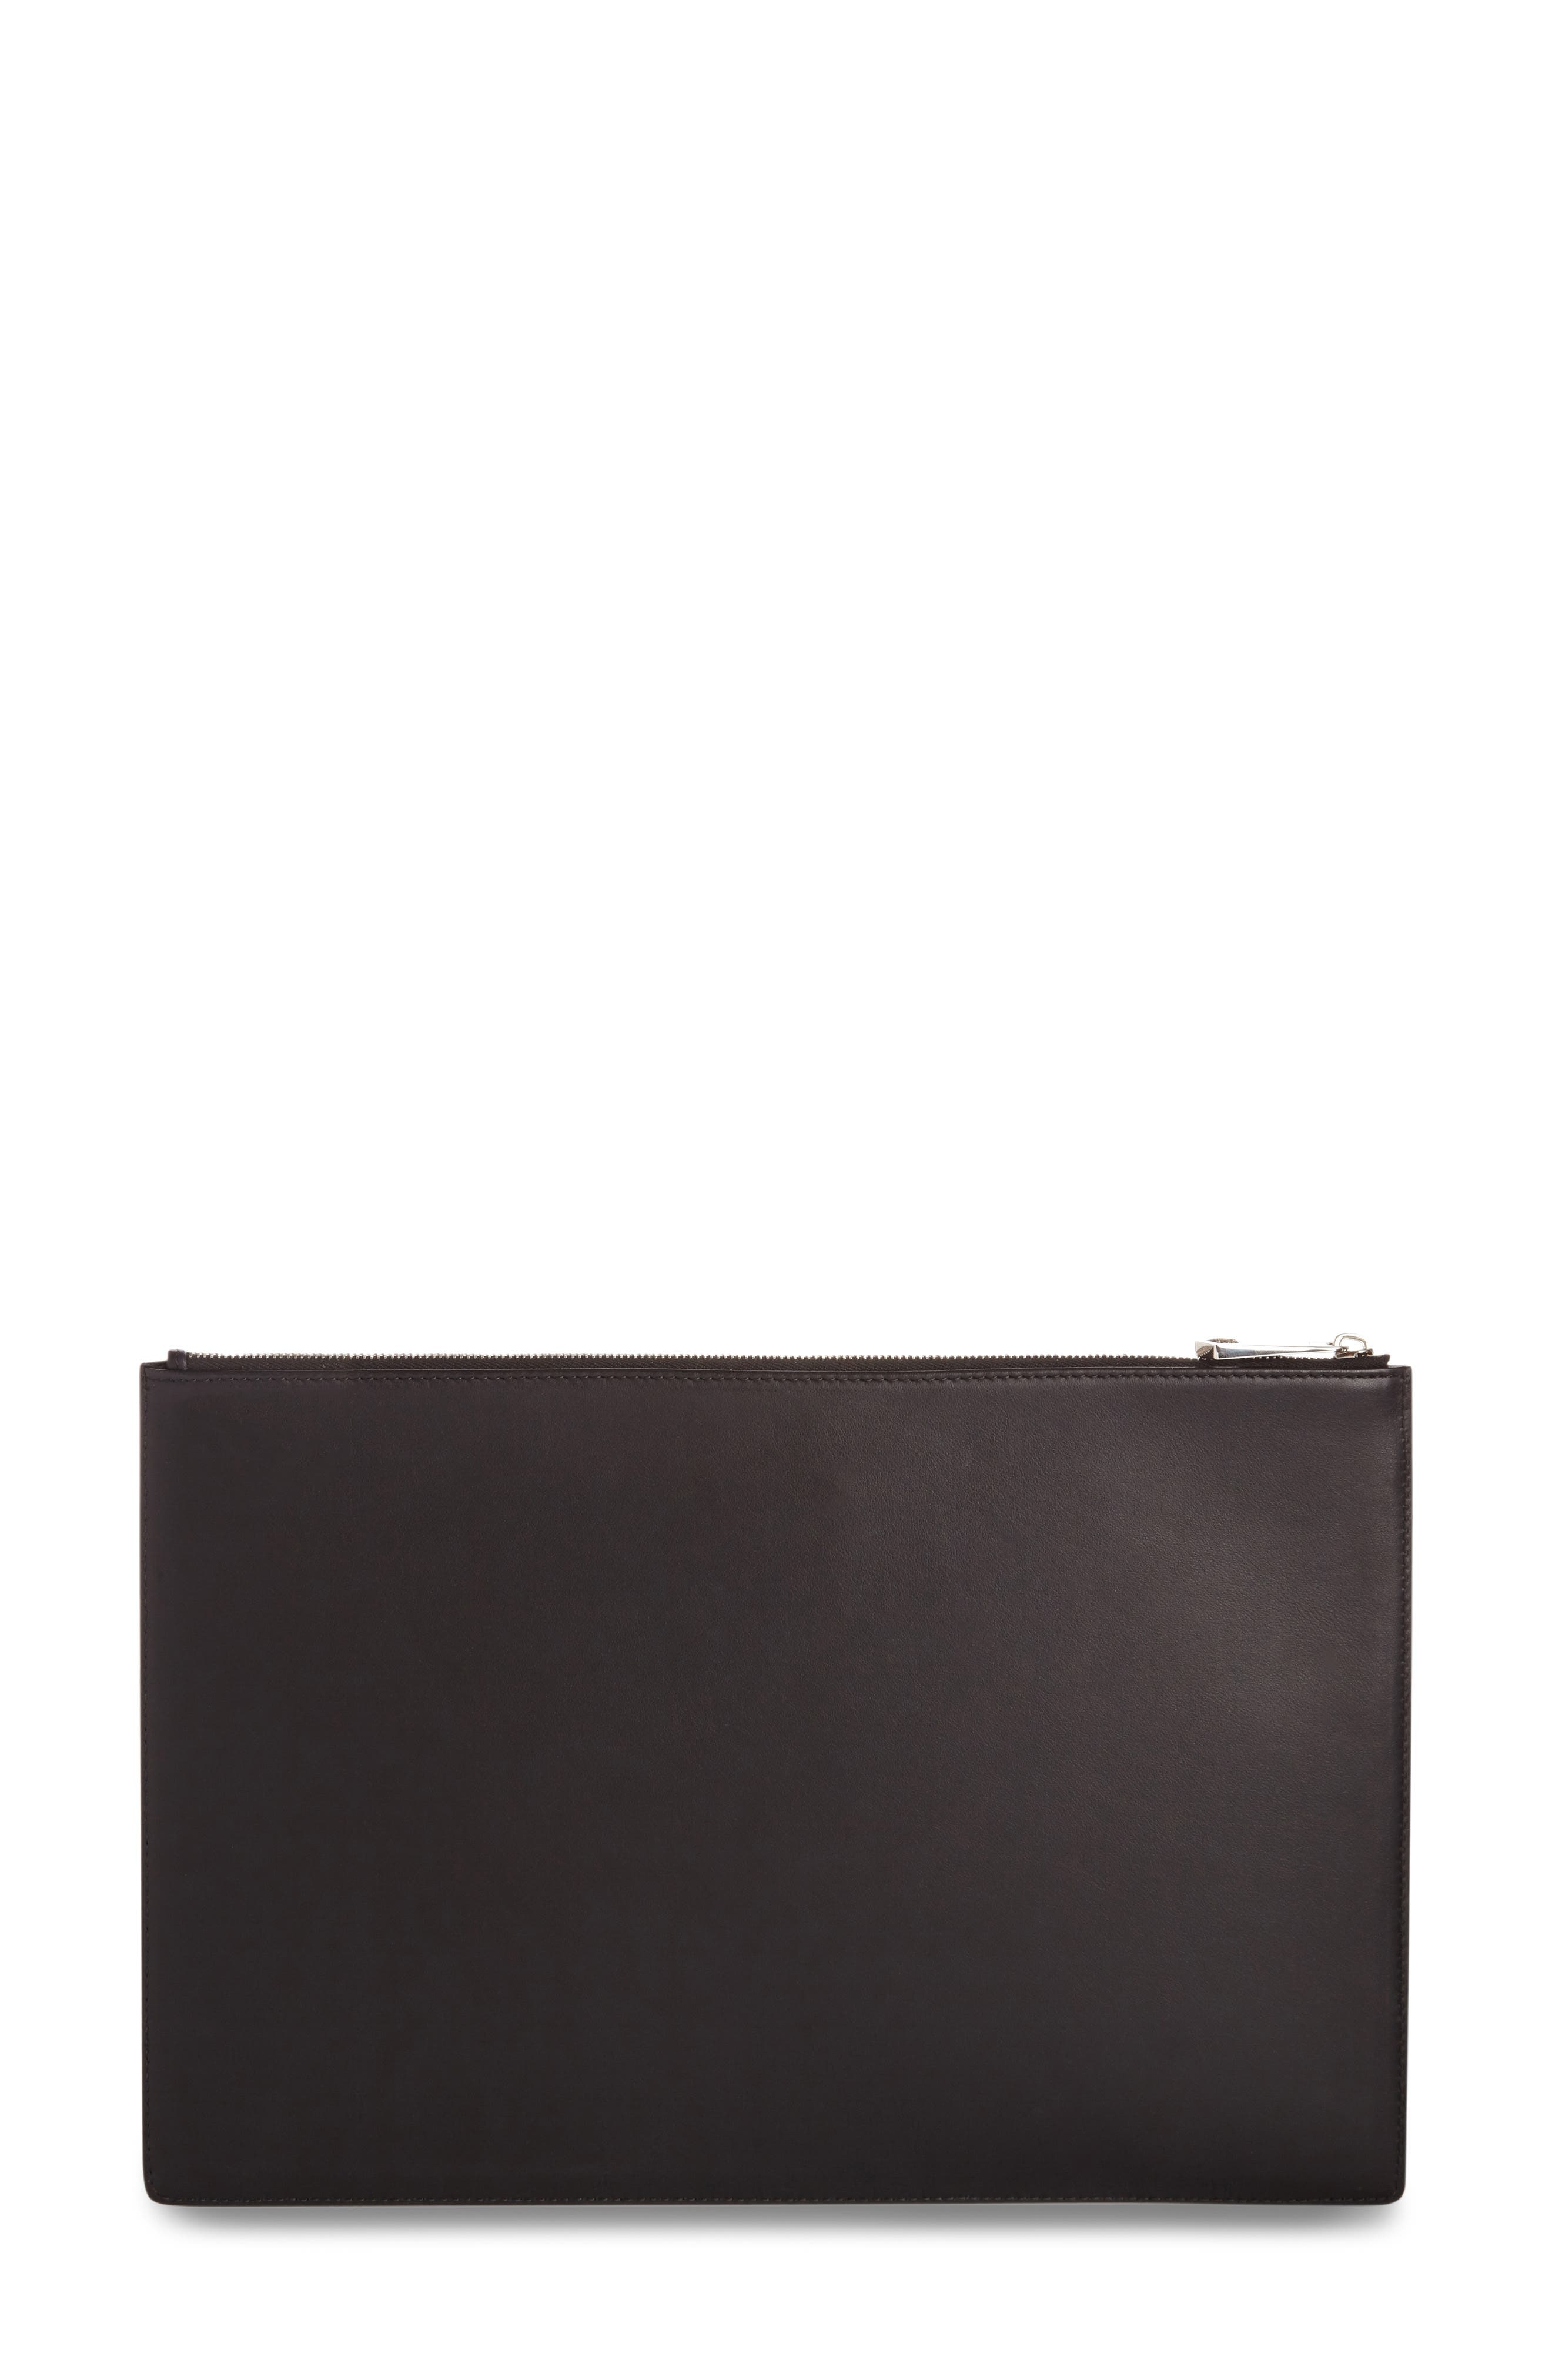 Bambi<sup>™</sup> Print Leather Pouch,                             Alternate thumbnail 3, color,